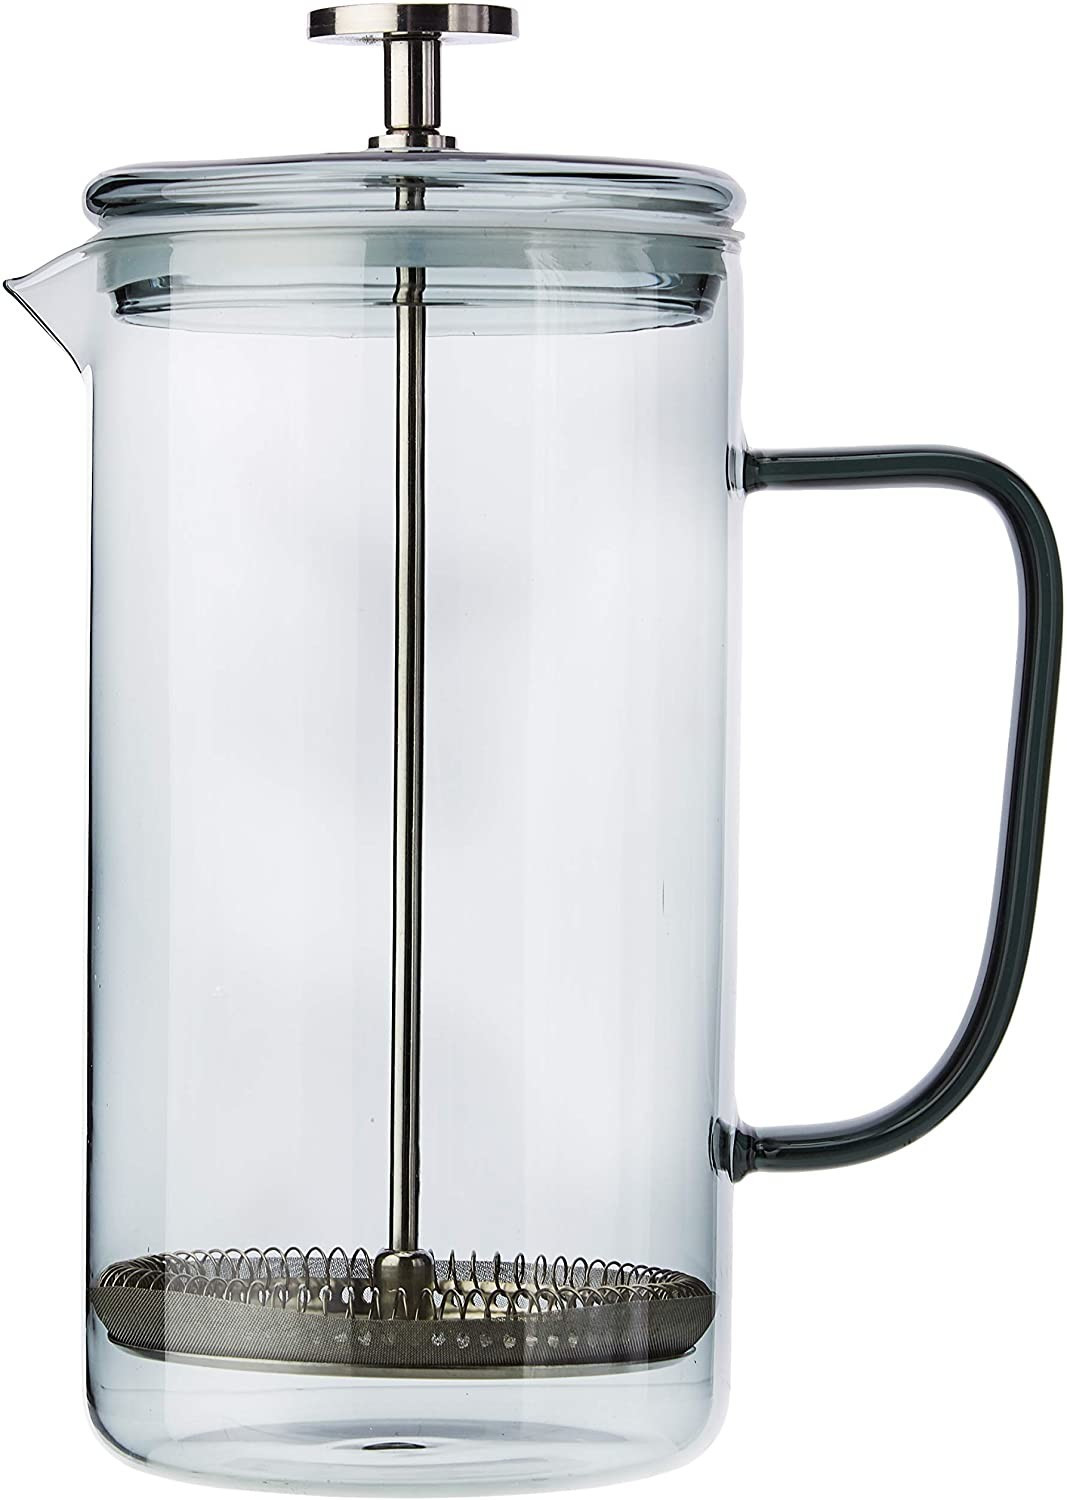 Image of La Cafetiere 8-Cup Borosilicate Glass Cafetière Smoky Grey